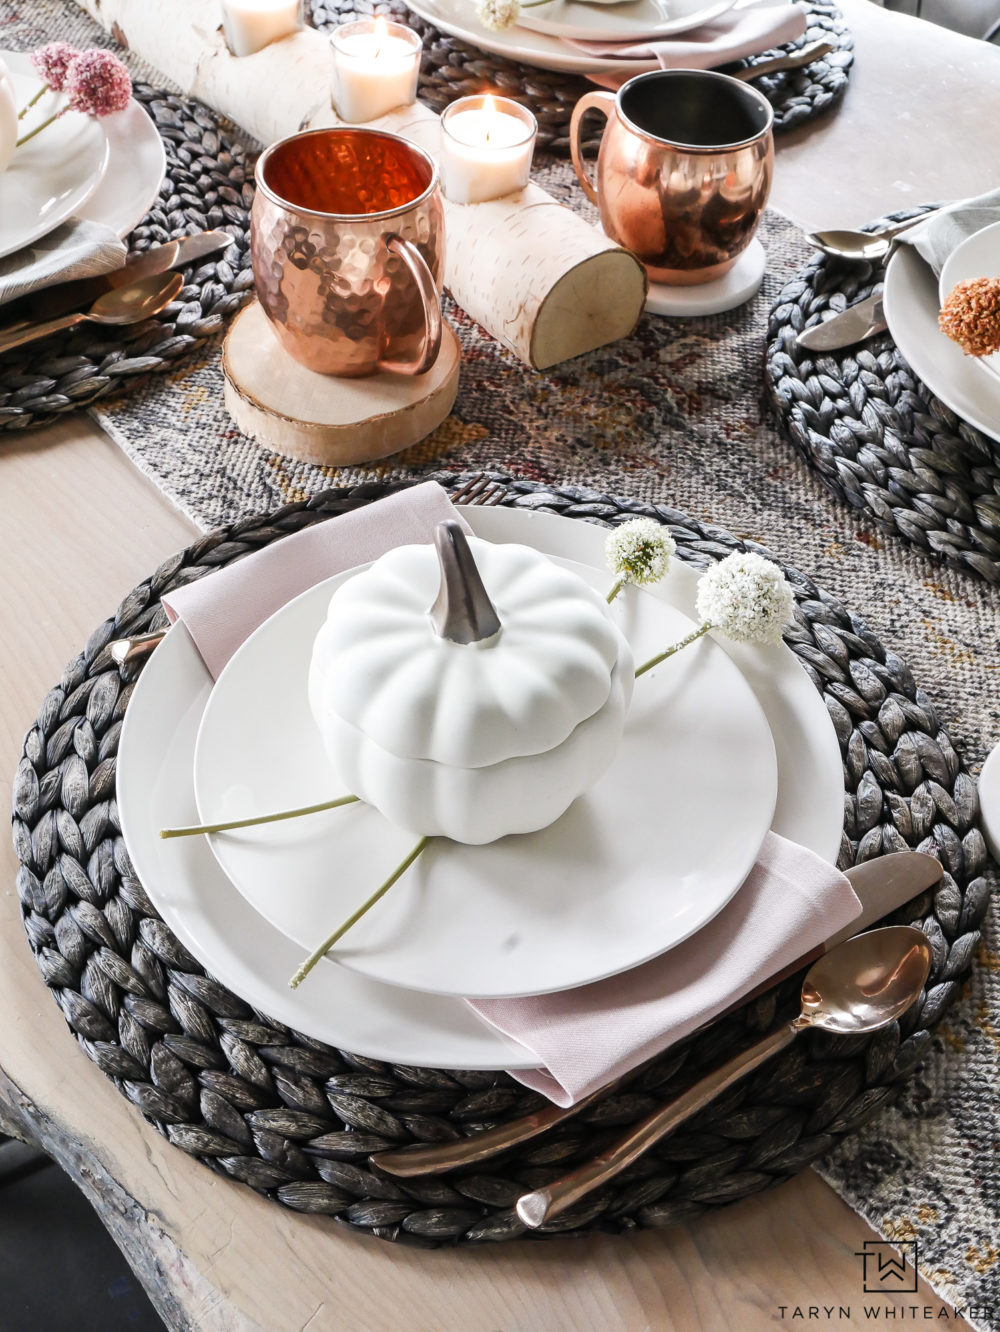 These blush pink fall table decorations are so sweet and create a beautiful soft and whimsical look for fall. Those pumpkin bakers are adorable!